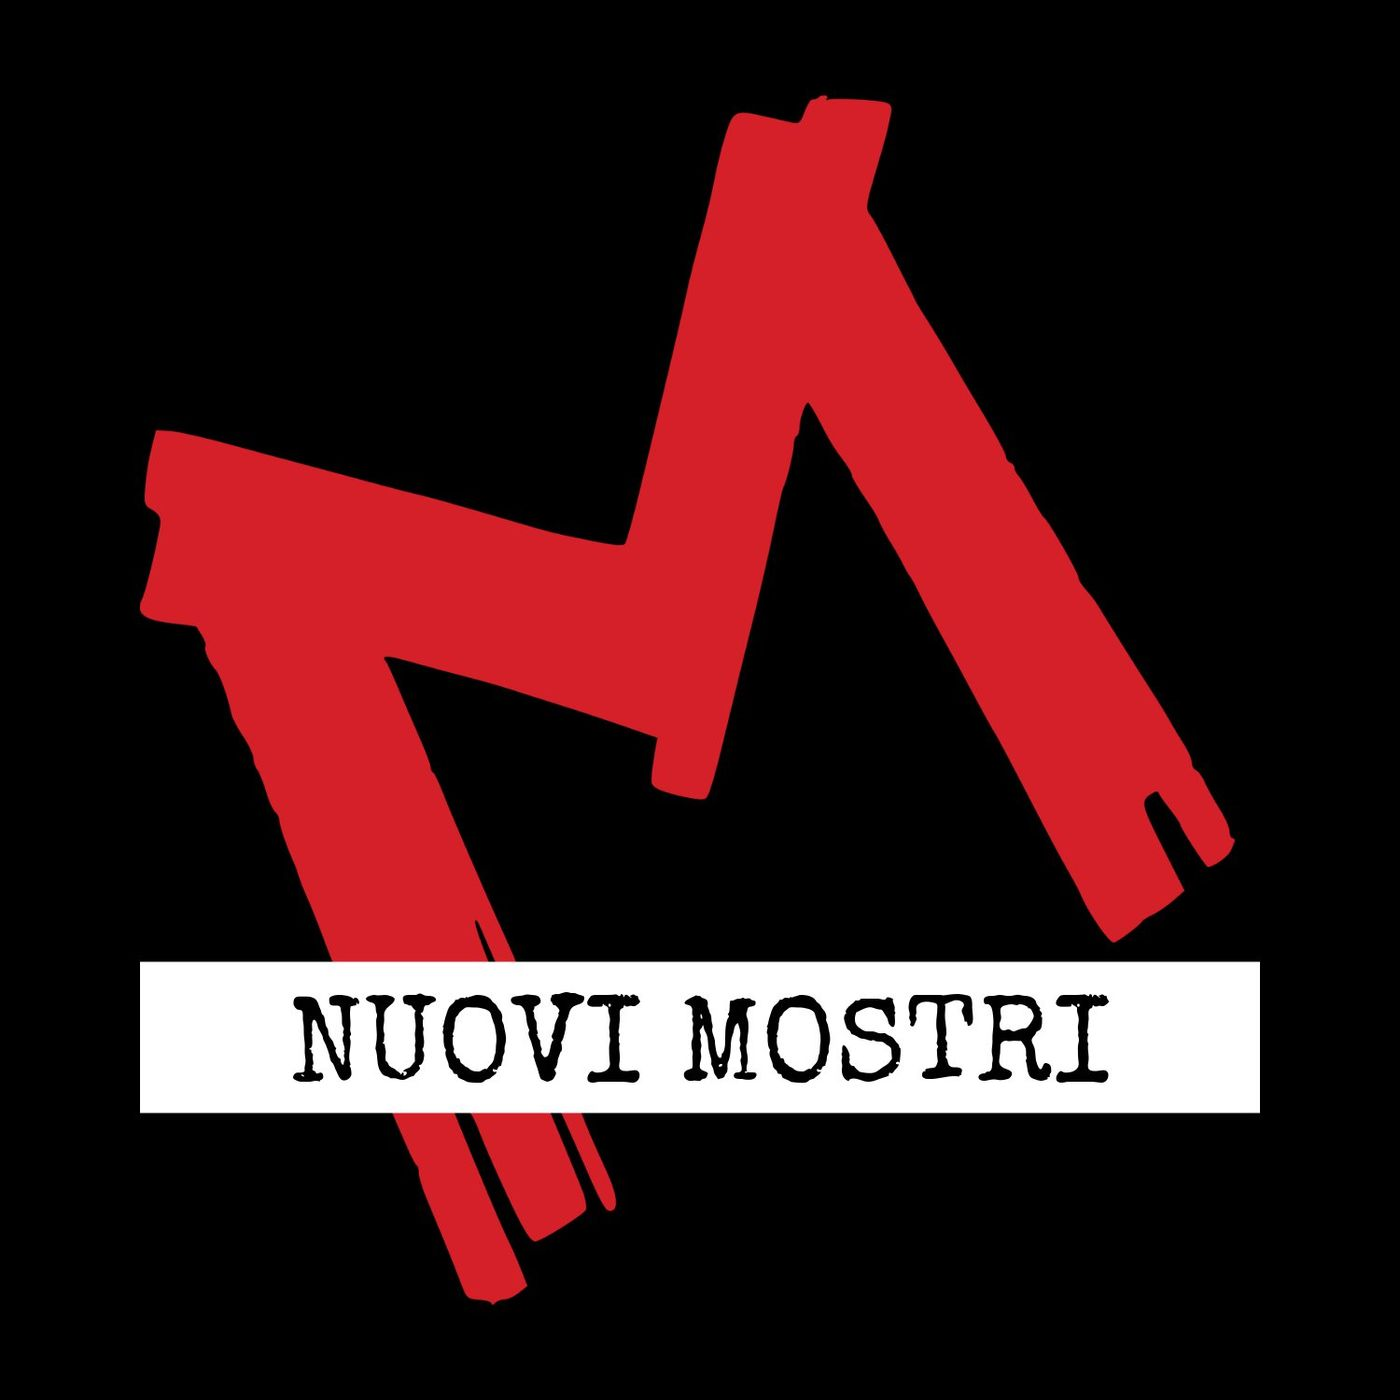 Noi mostri parte seconda